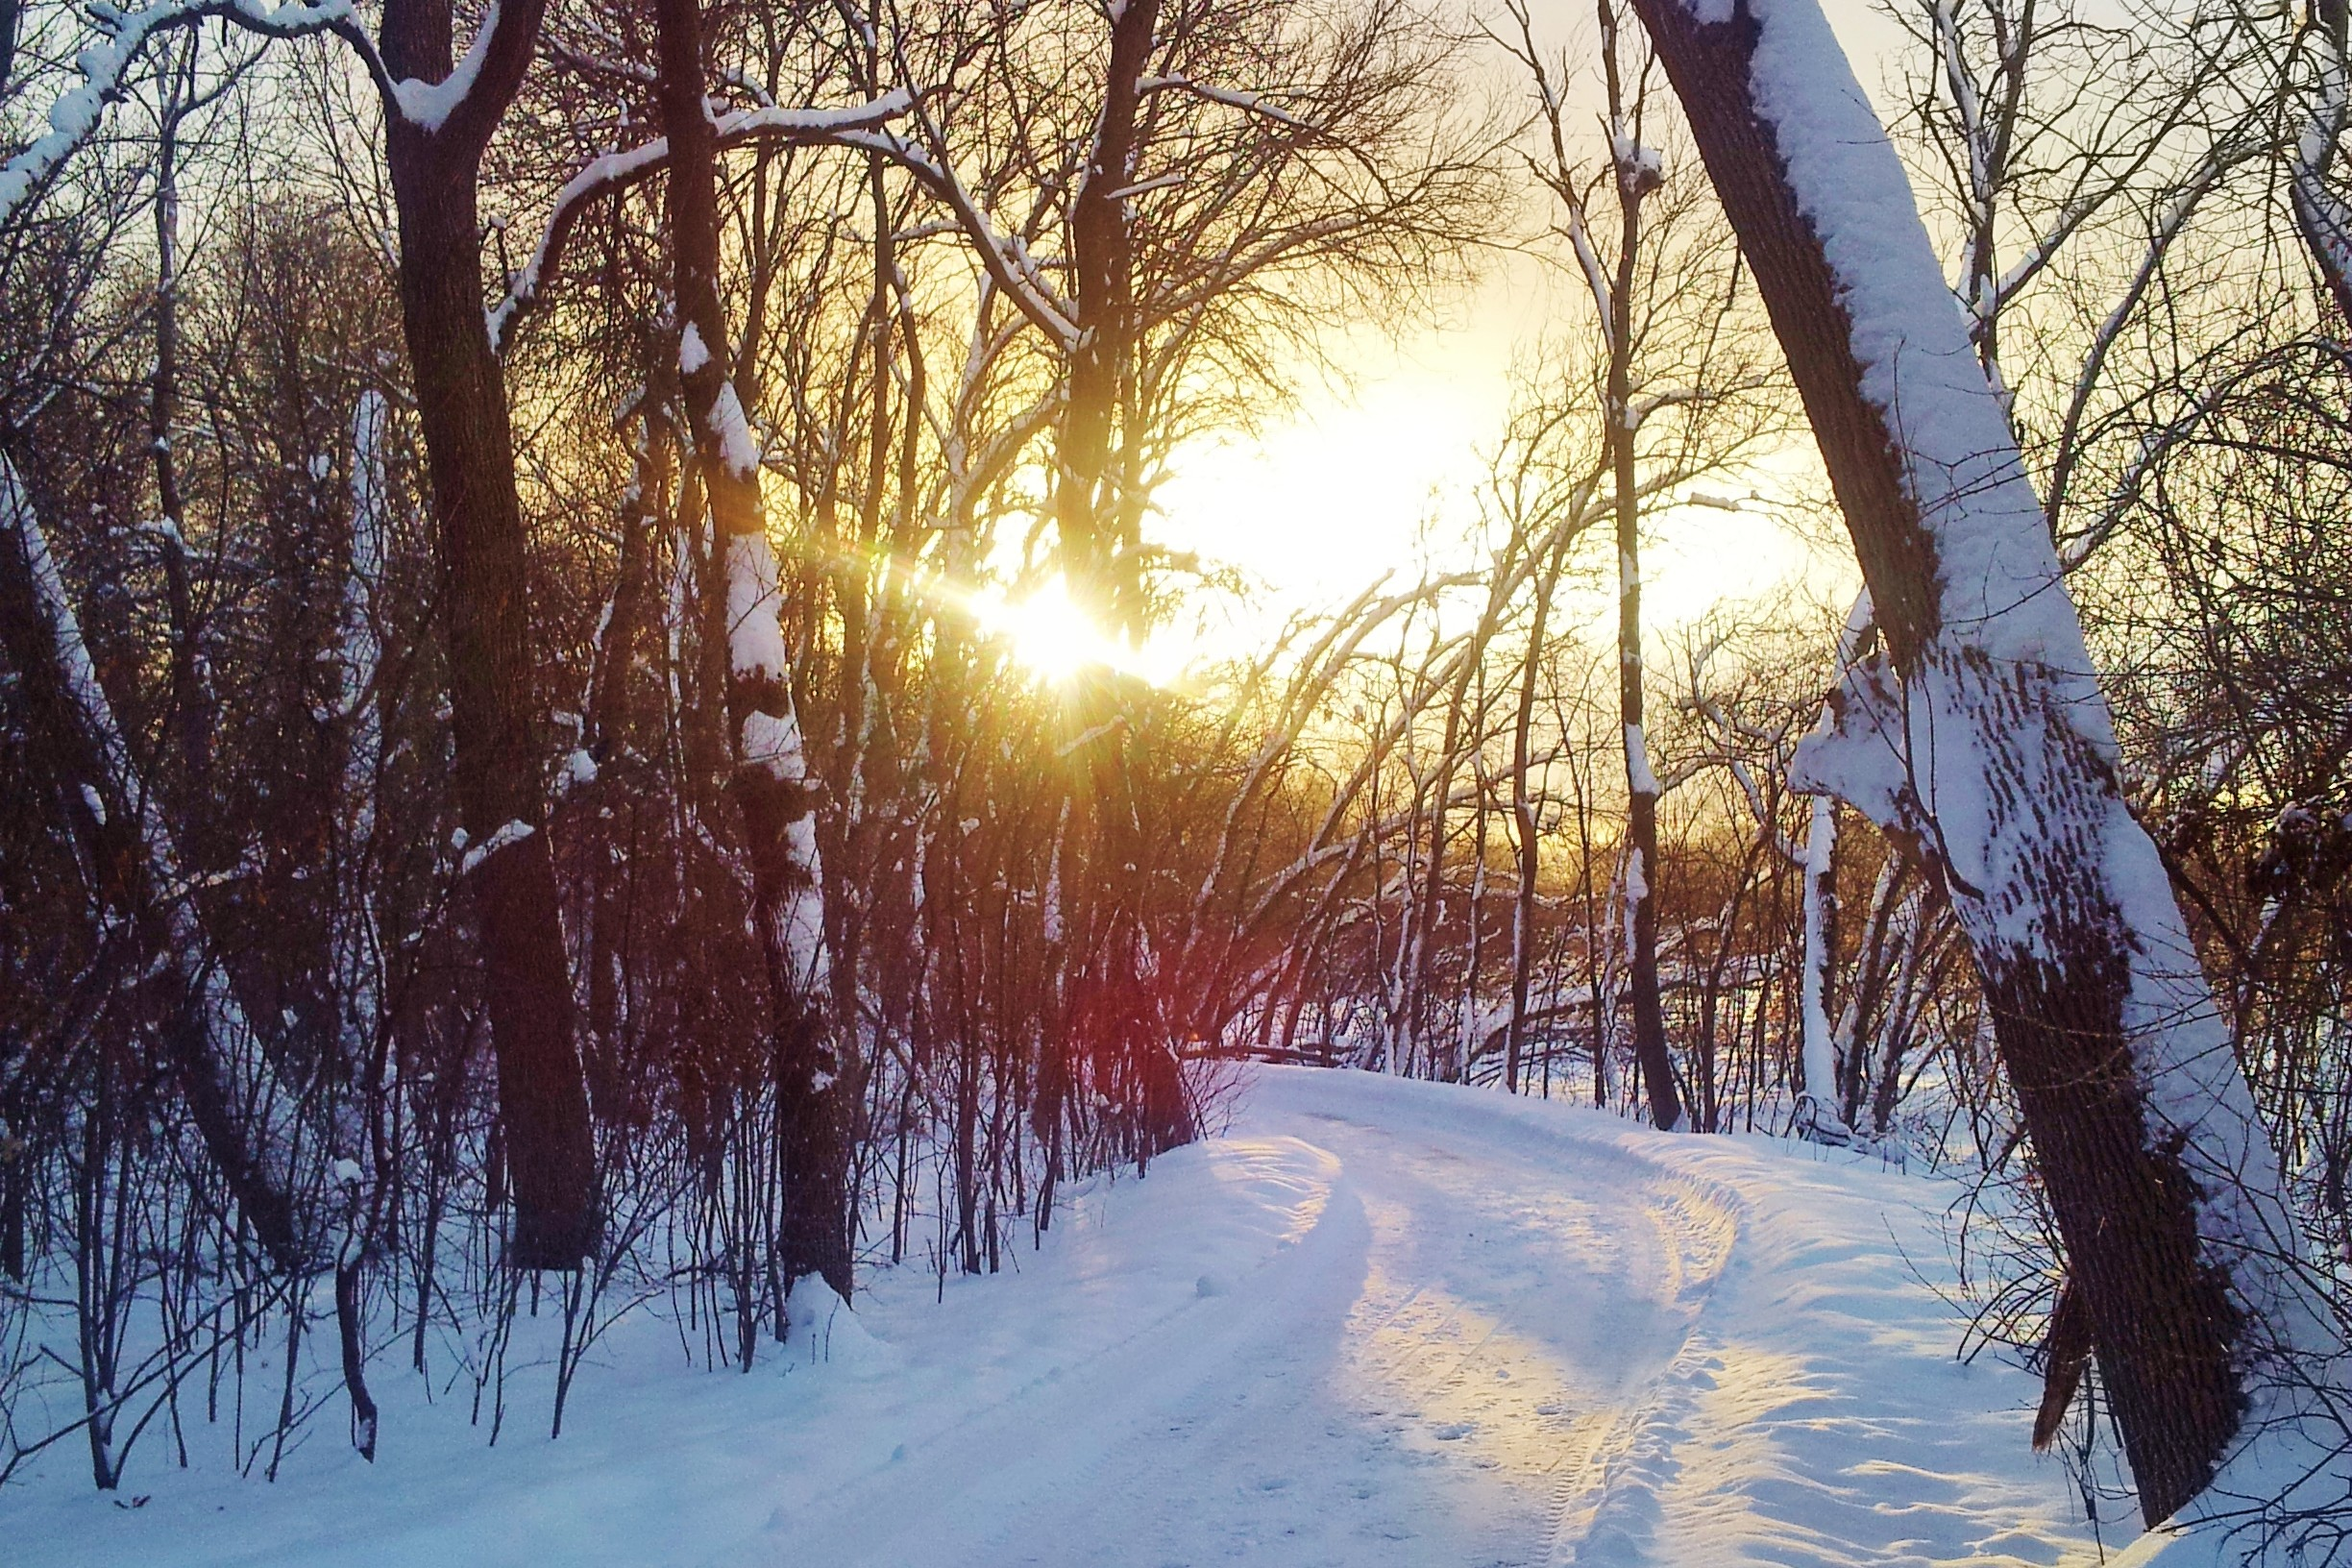 A Snowy Walk Refocused My Lenten Journey